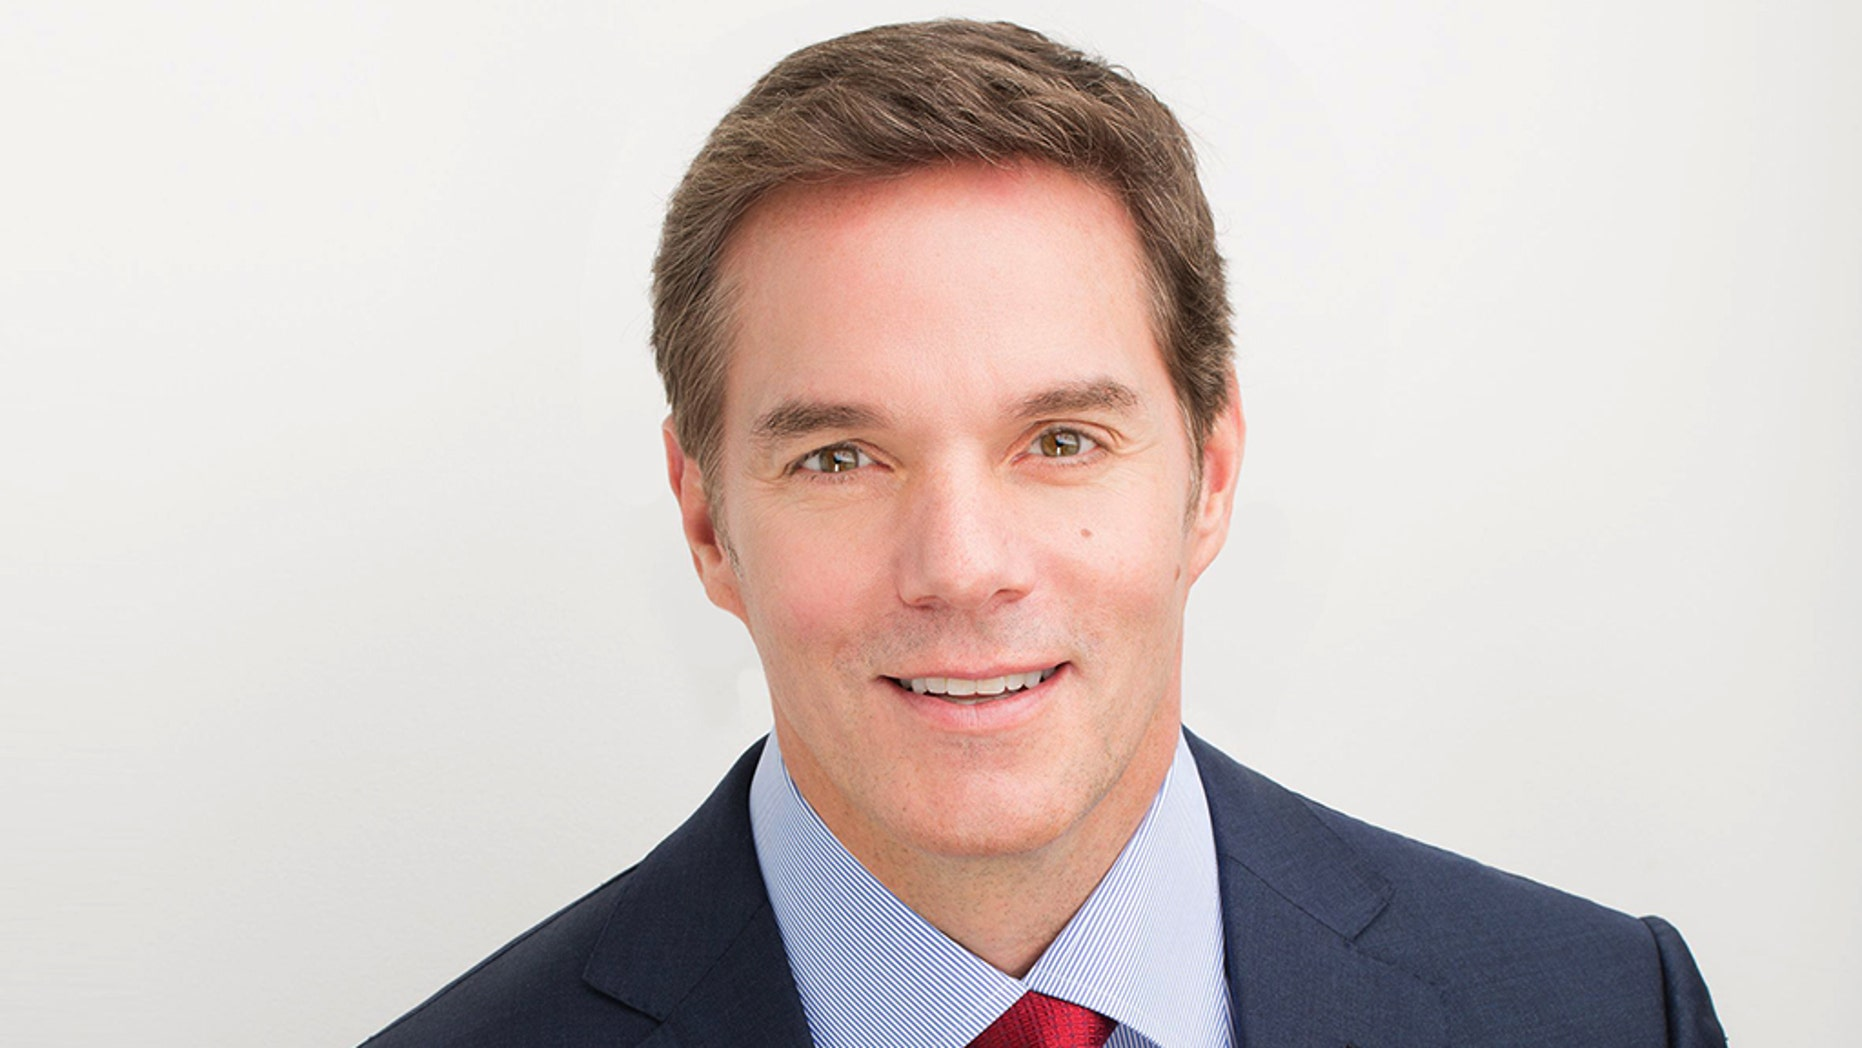 """Bill Hemmer Reports"" begins on January 20 at 3 p.m. ET on Fox News Channel."